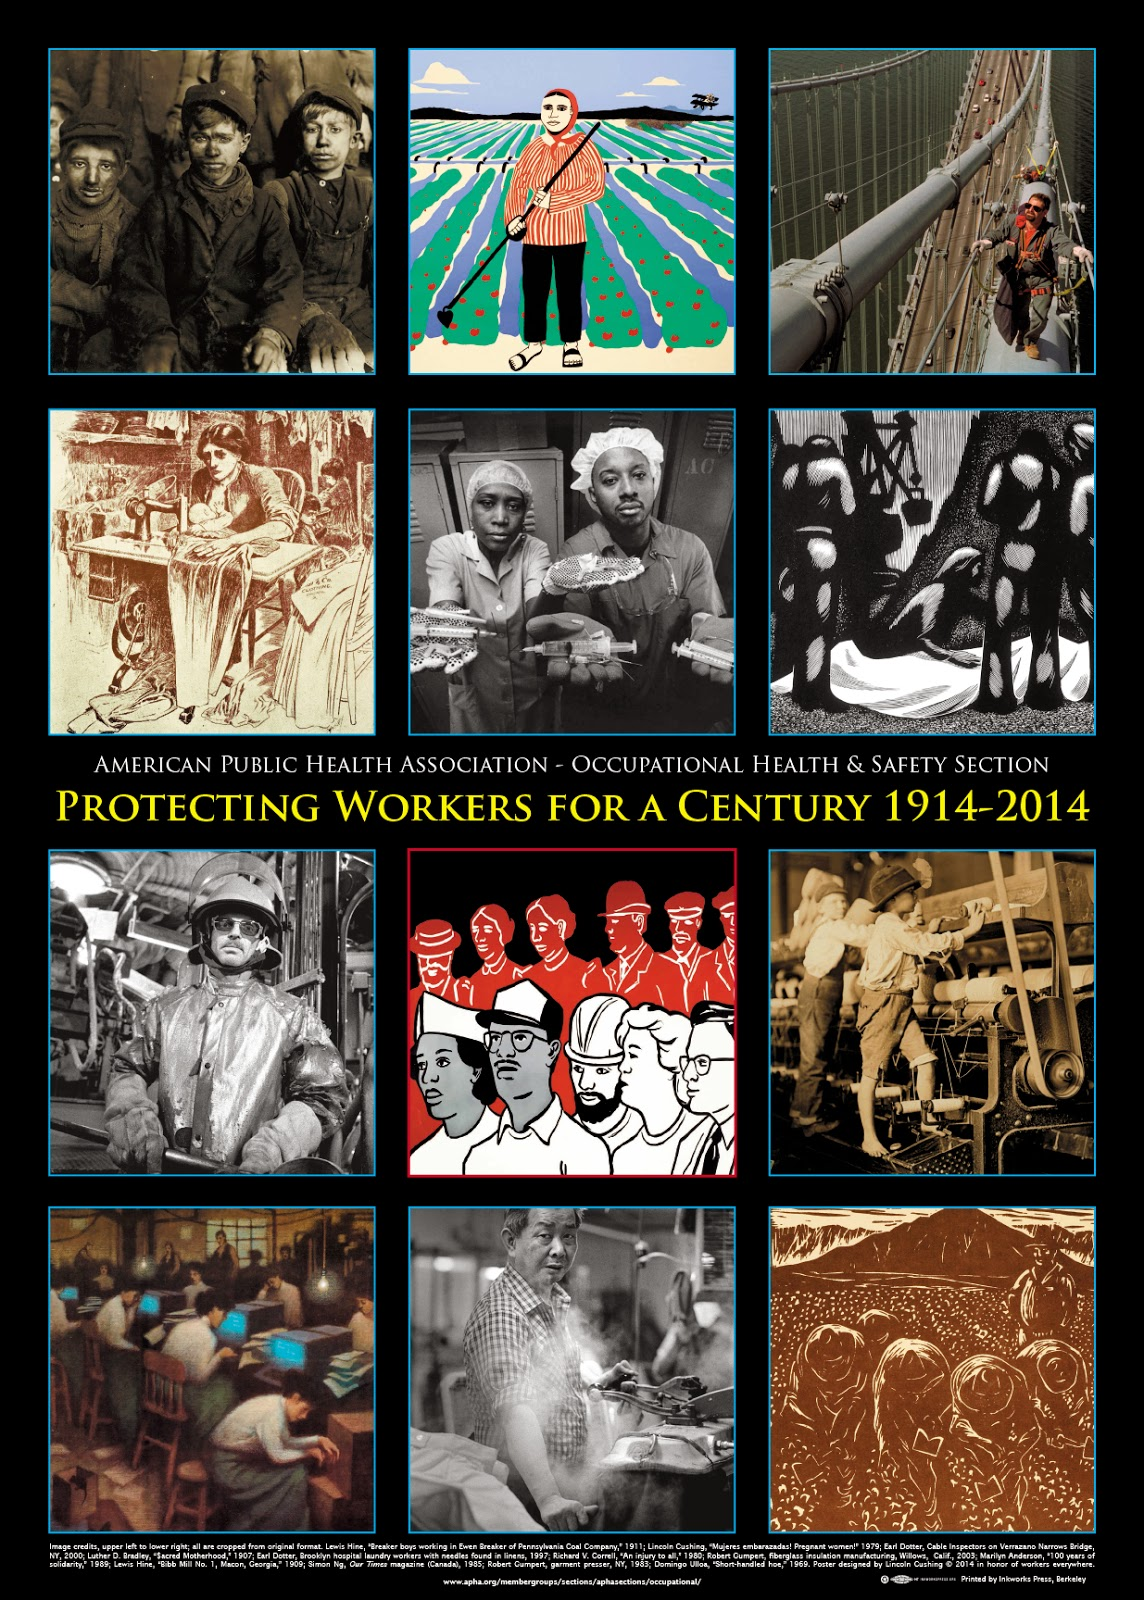 photos of worker protections throught the century